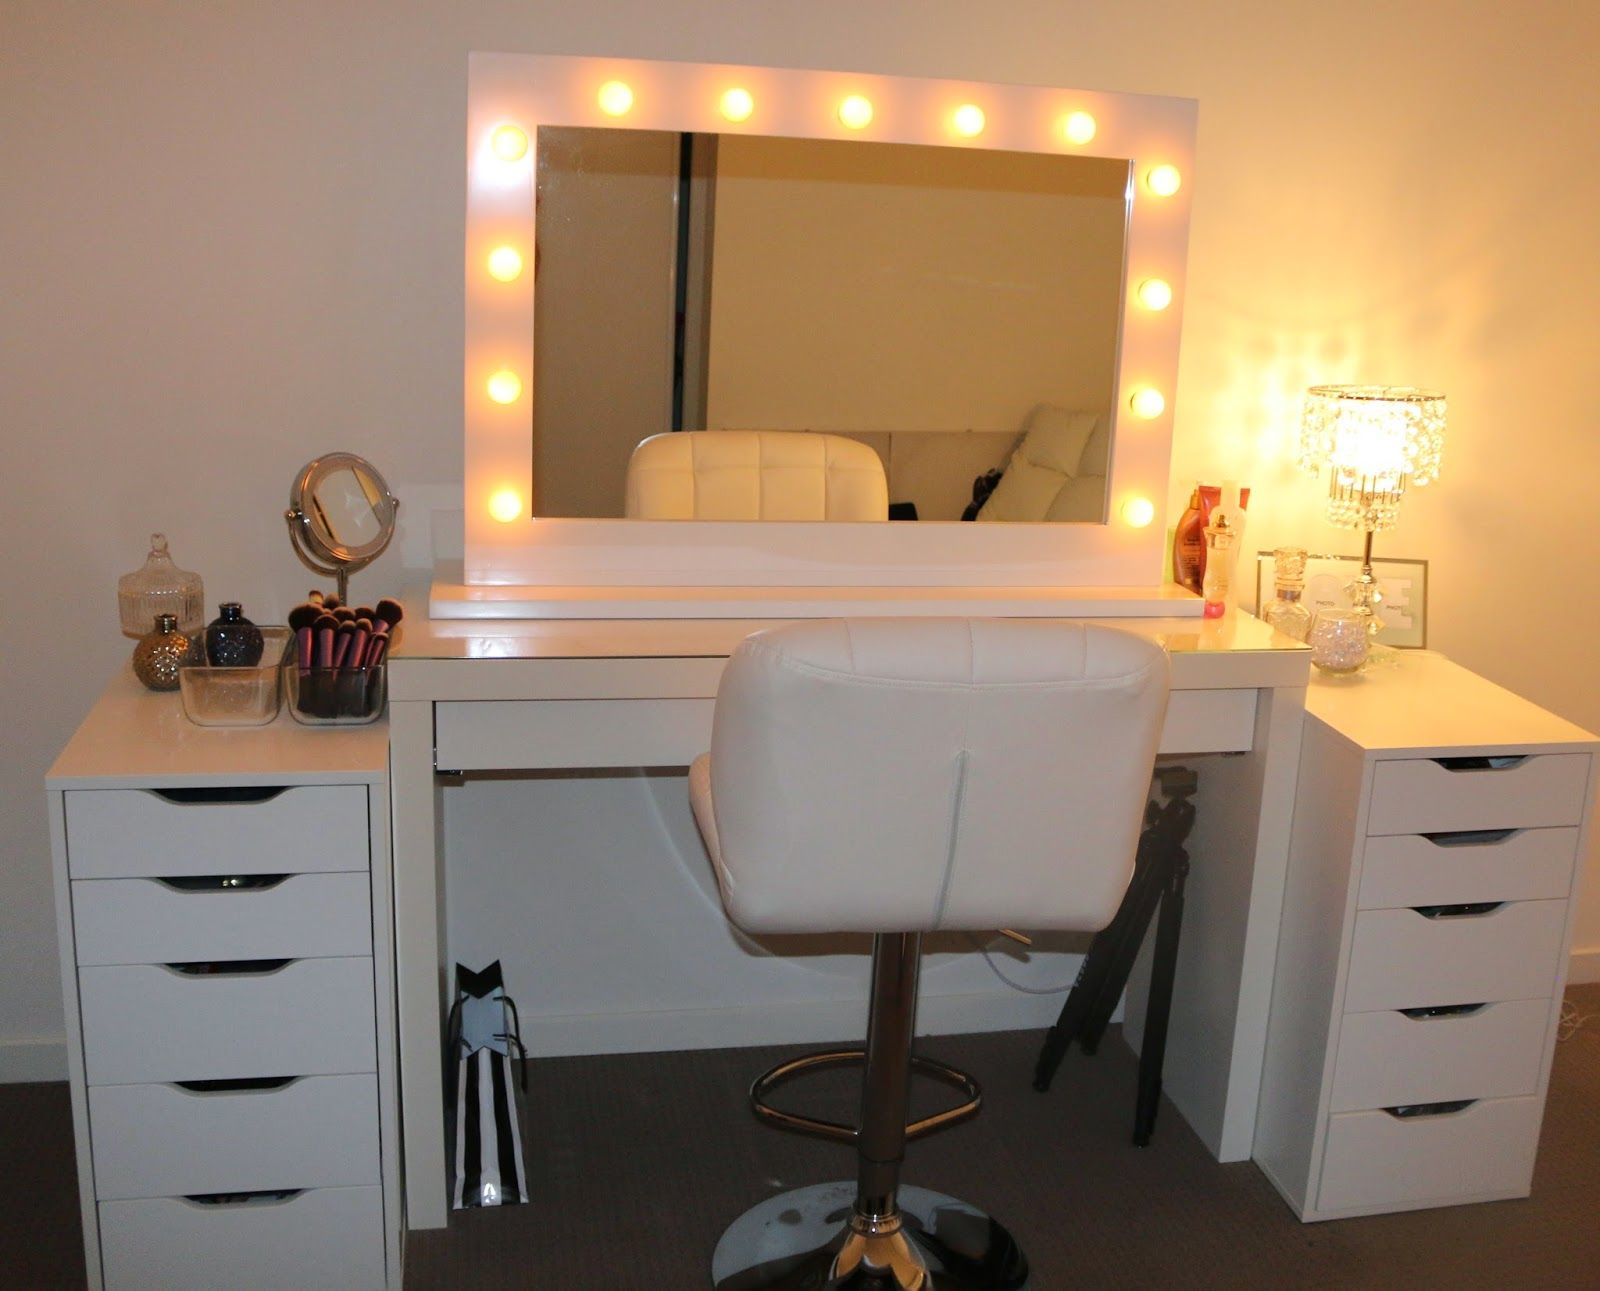 Metal Makeup Vanity Table Set Square Mirror With Lights On Makeup Vanity Table With